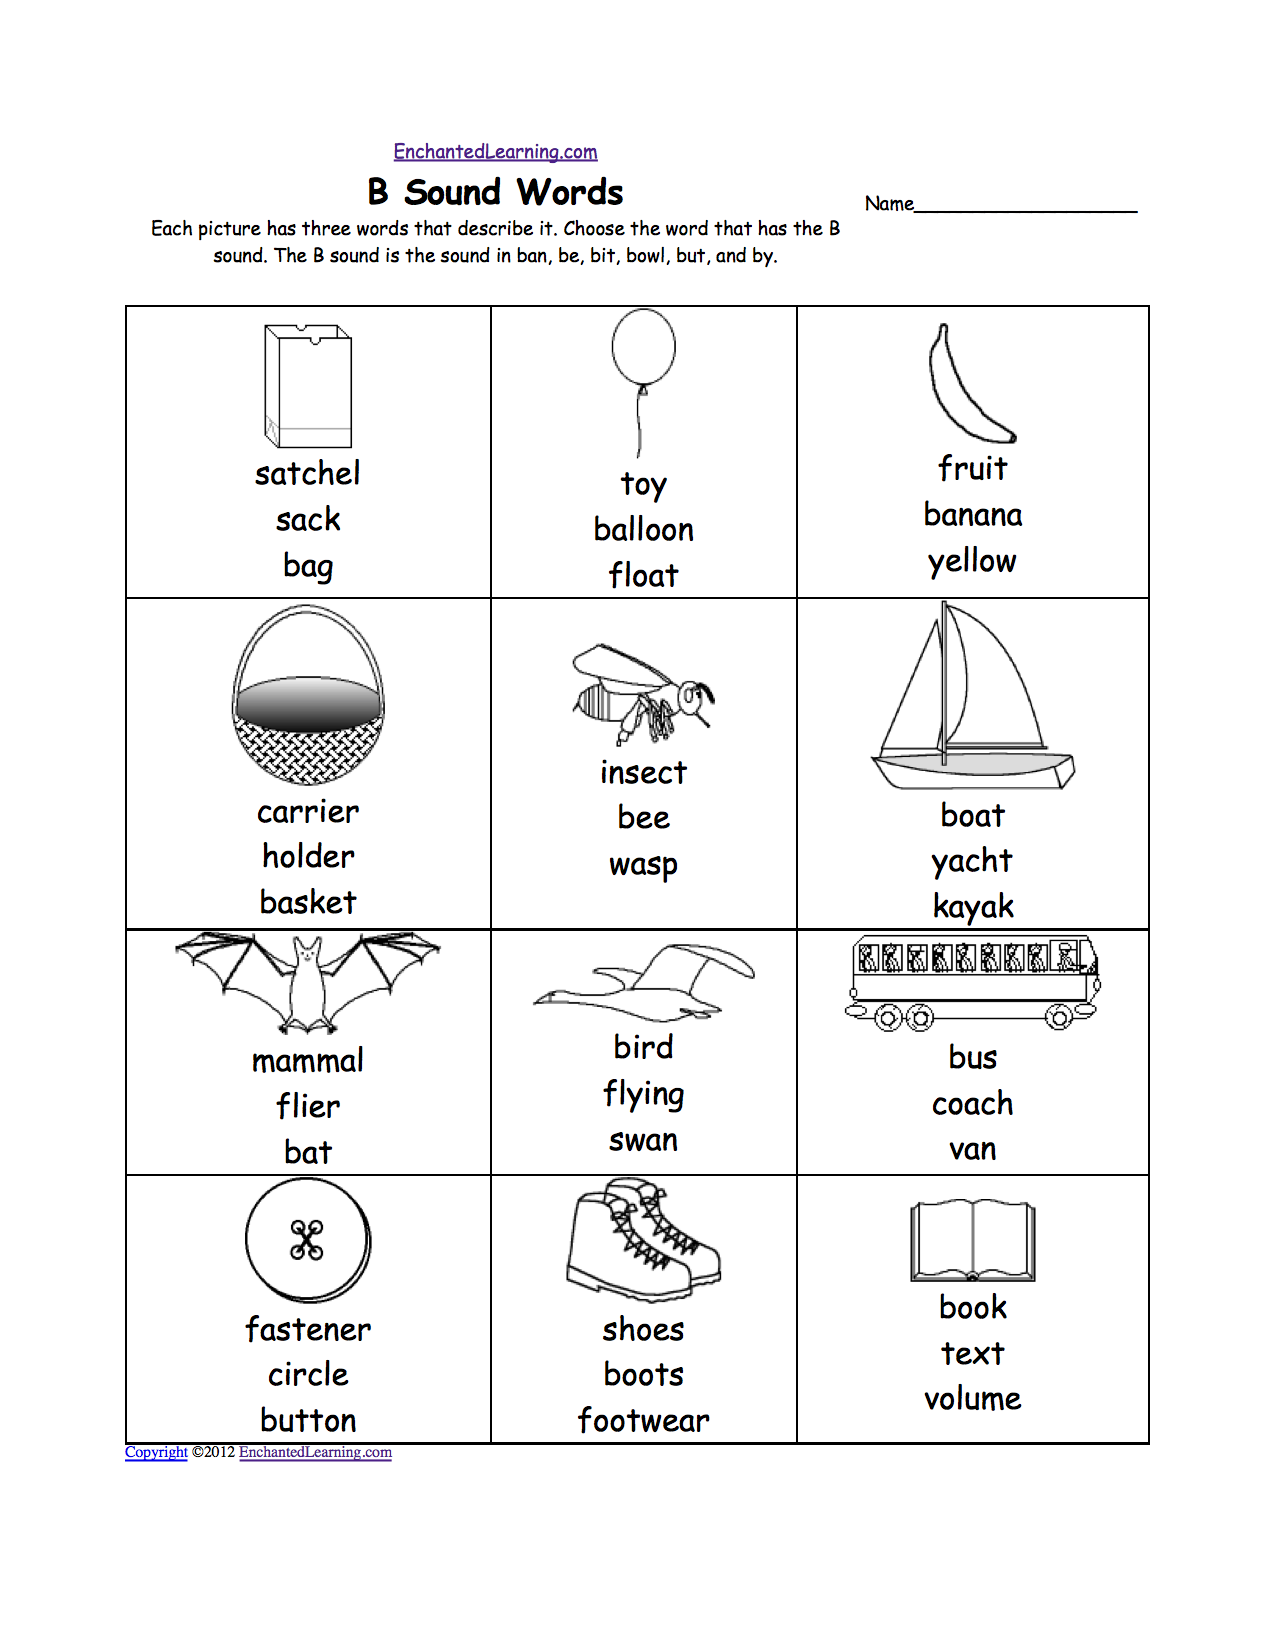 Weirdmailus  Pleasant Phonics Worksheets Multiple Choice Worksheets To Print  With Luxury Quotbquot Sound Phonics Worksheet Multiple Choice Each Picture Has Three Words That Describe It Choose The Word That Has A Quotbquot Sound The Quotbquot Sound Is The Sound  With Nice Homonyms Worksheet Also Child Support Worksheet Nc In Addition Math Center Worksheets And Time And Motion Study Worksheet As Well As Plural And Singular Possessive Nouns Worksheets Additionally Step  Inventory Worksheet From Enchantedlearningcom With Weirdmailus  Luxury Phonics Worksheets Multiple Choice Worksheets To Print  With Nice Quotbquot Sound Phonics Worksheet Multiple Choice Each Picture Has Three Words That Describe It Choose The Word That Has A Quotbquot Sound The Quotbquot Sound Is The Sound  And Pleasant Homonyms Worksheet Also Child Support Worksheet Nc In Addition Math Center Worksheets From Enchantedlearningcom